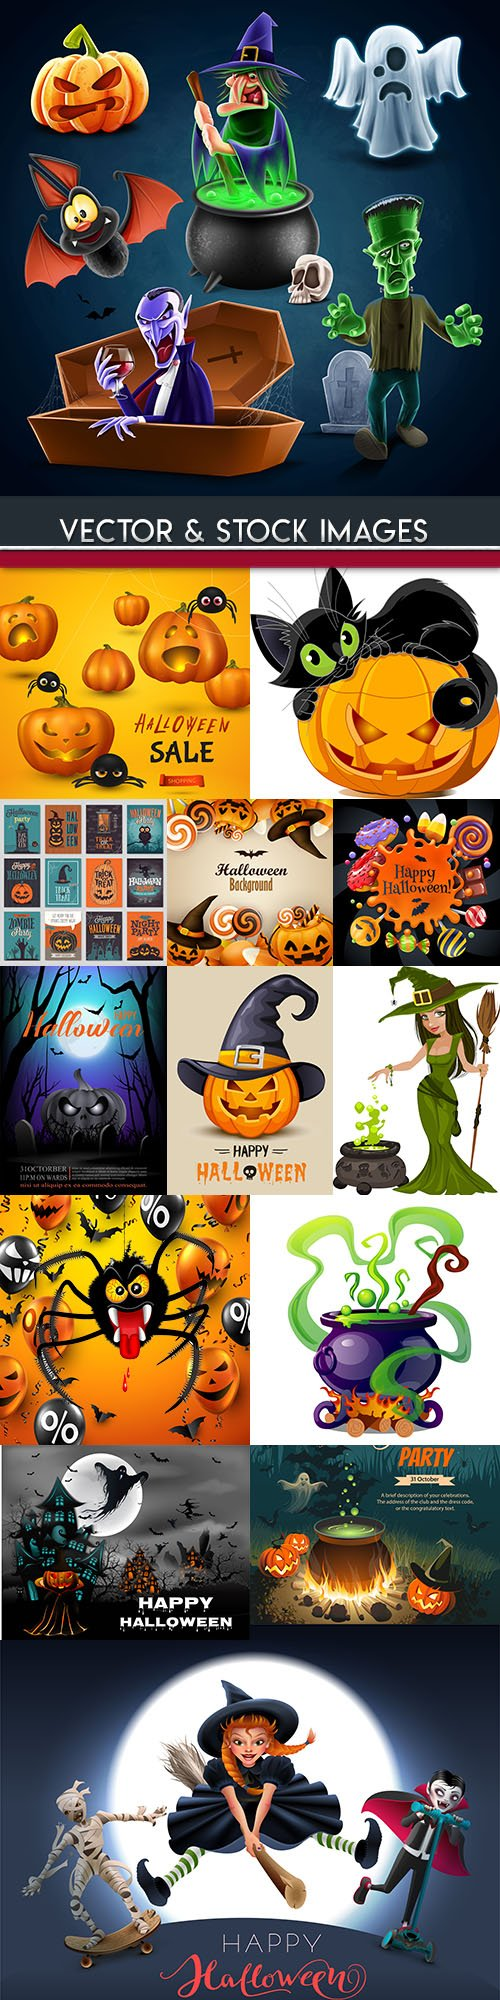 Happy Halloween holiday illustration collection 26